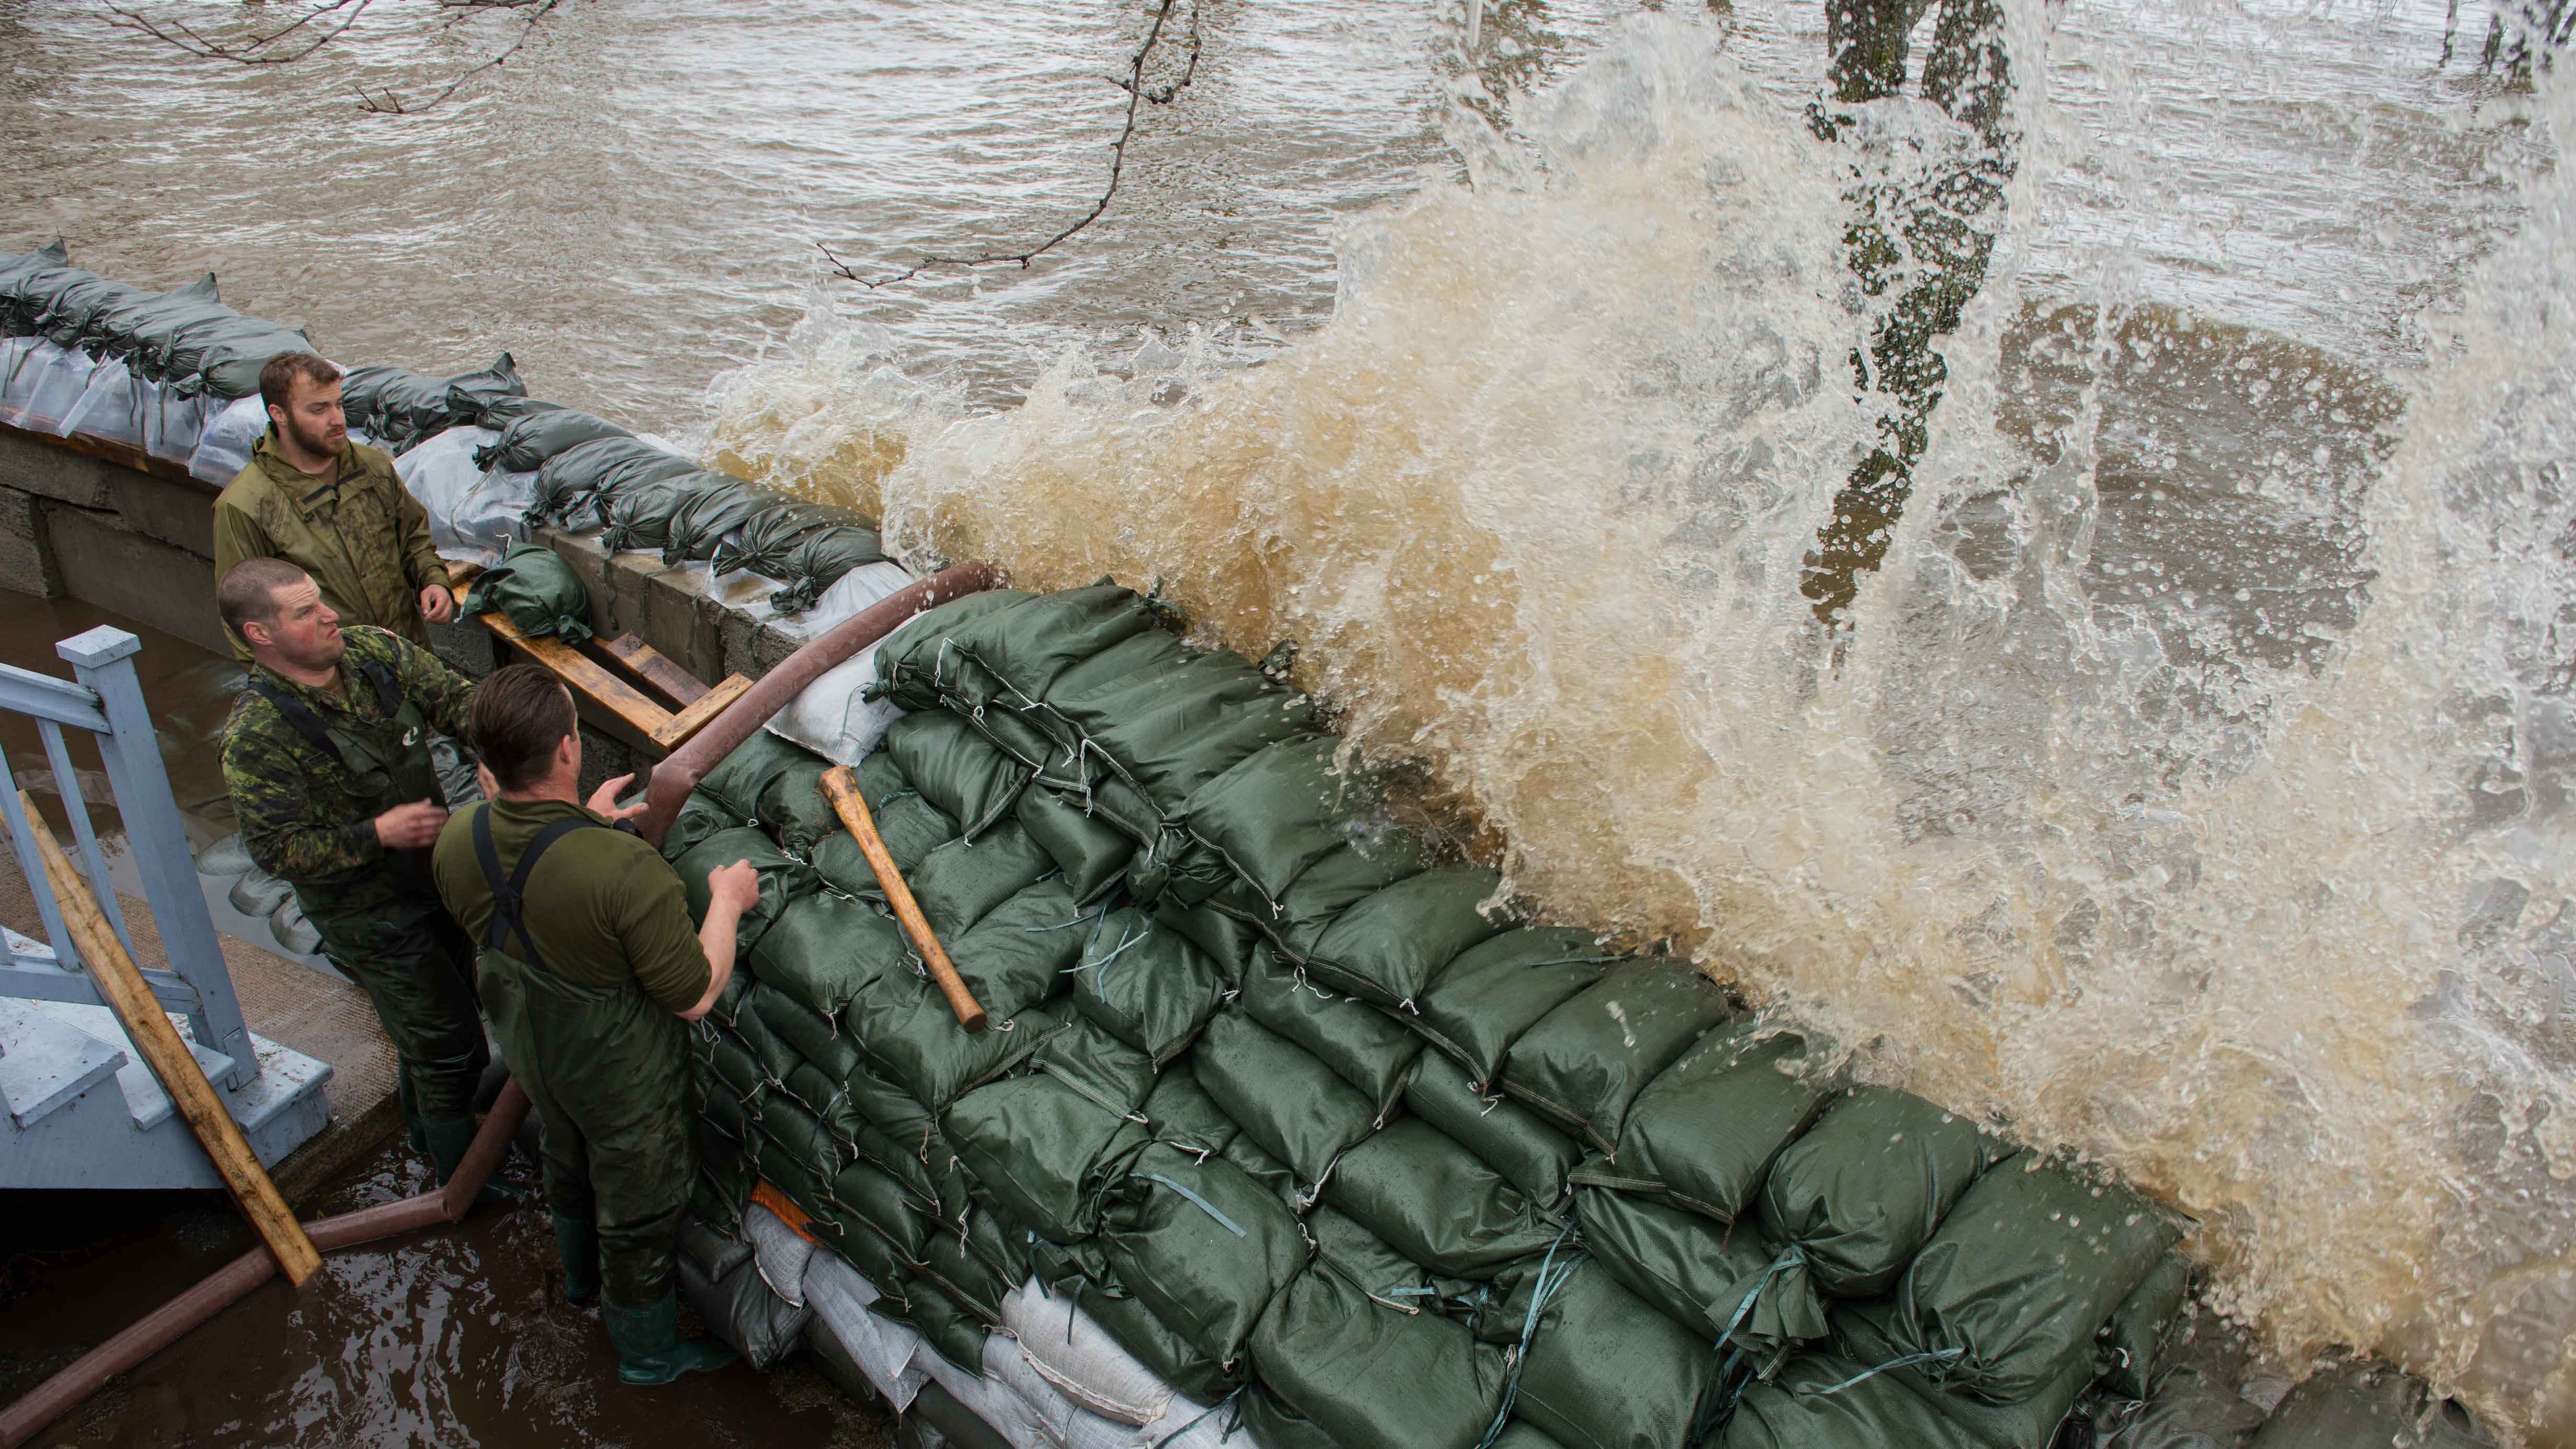 Members of 1st battalion of Royal 22e Régiment participate in Operation LENTUS in response to flooding in some regions of Quebec on May 9, 2017. (photo: Corporal Myki Poirier-Joyal, Imaging services St-Jean/Montreal)